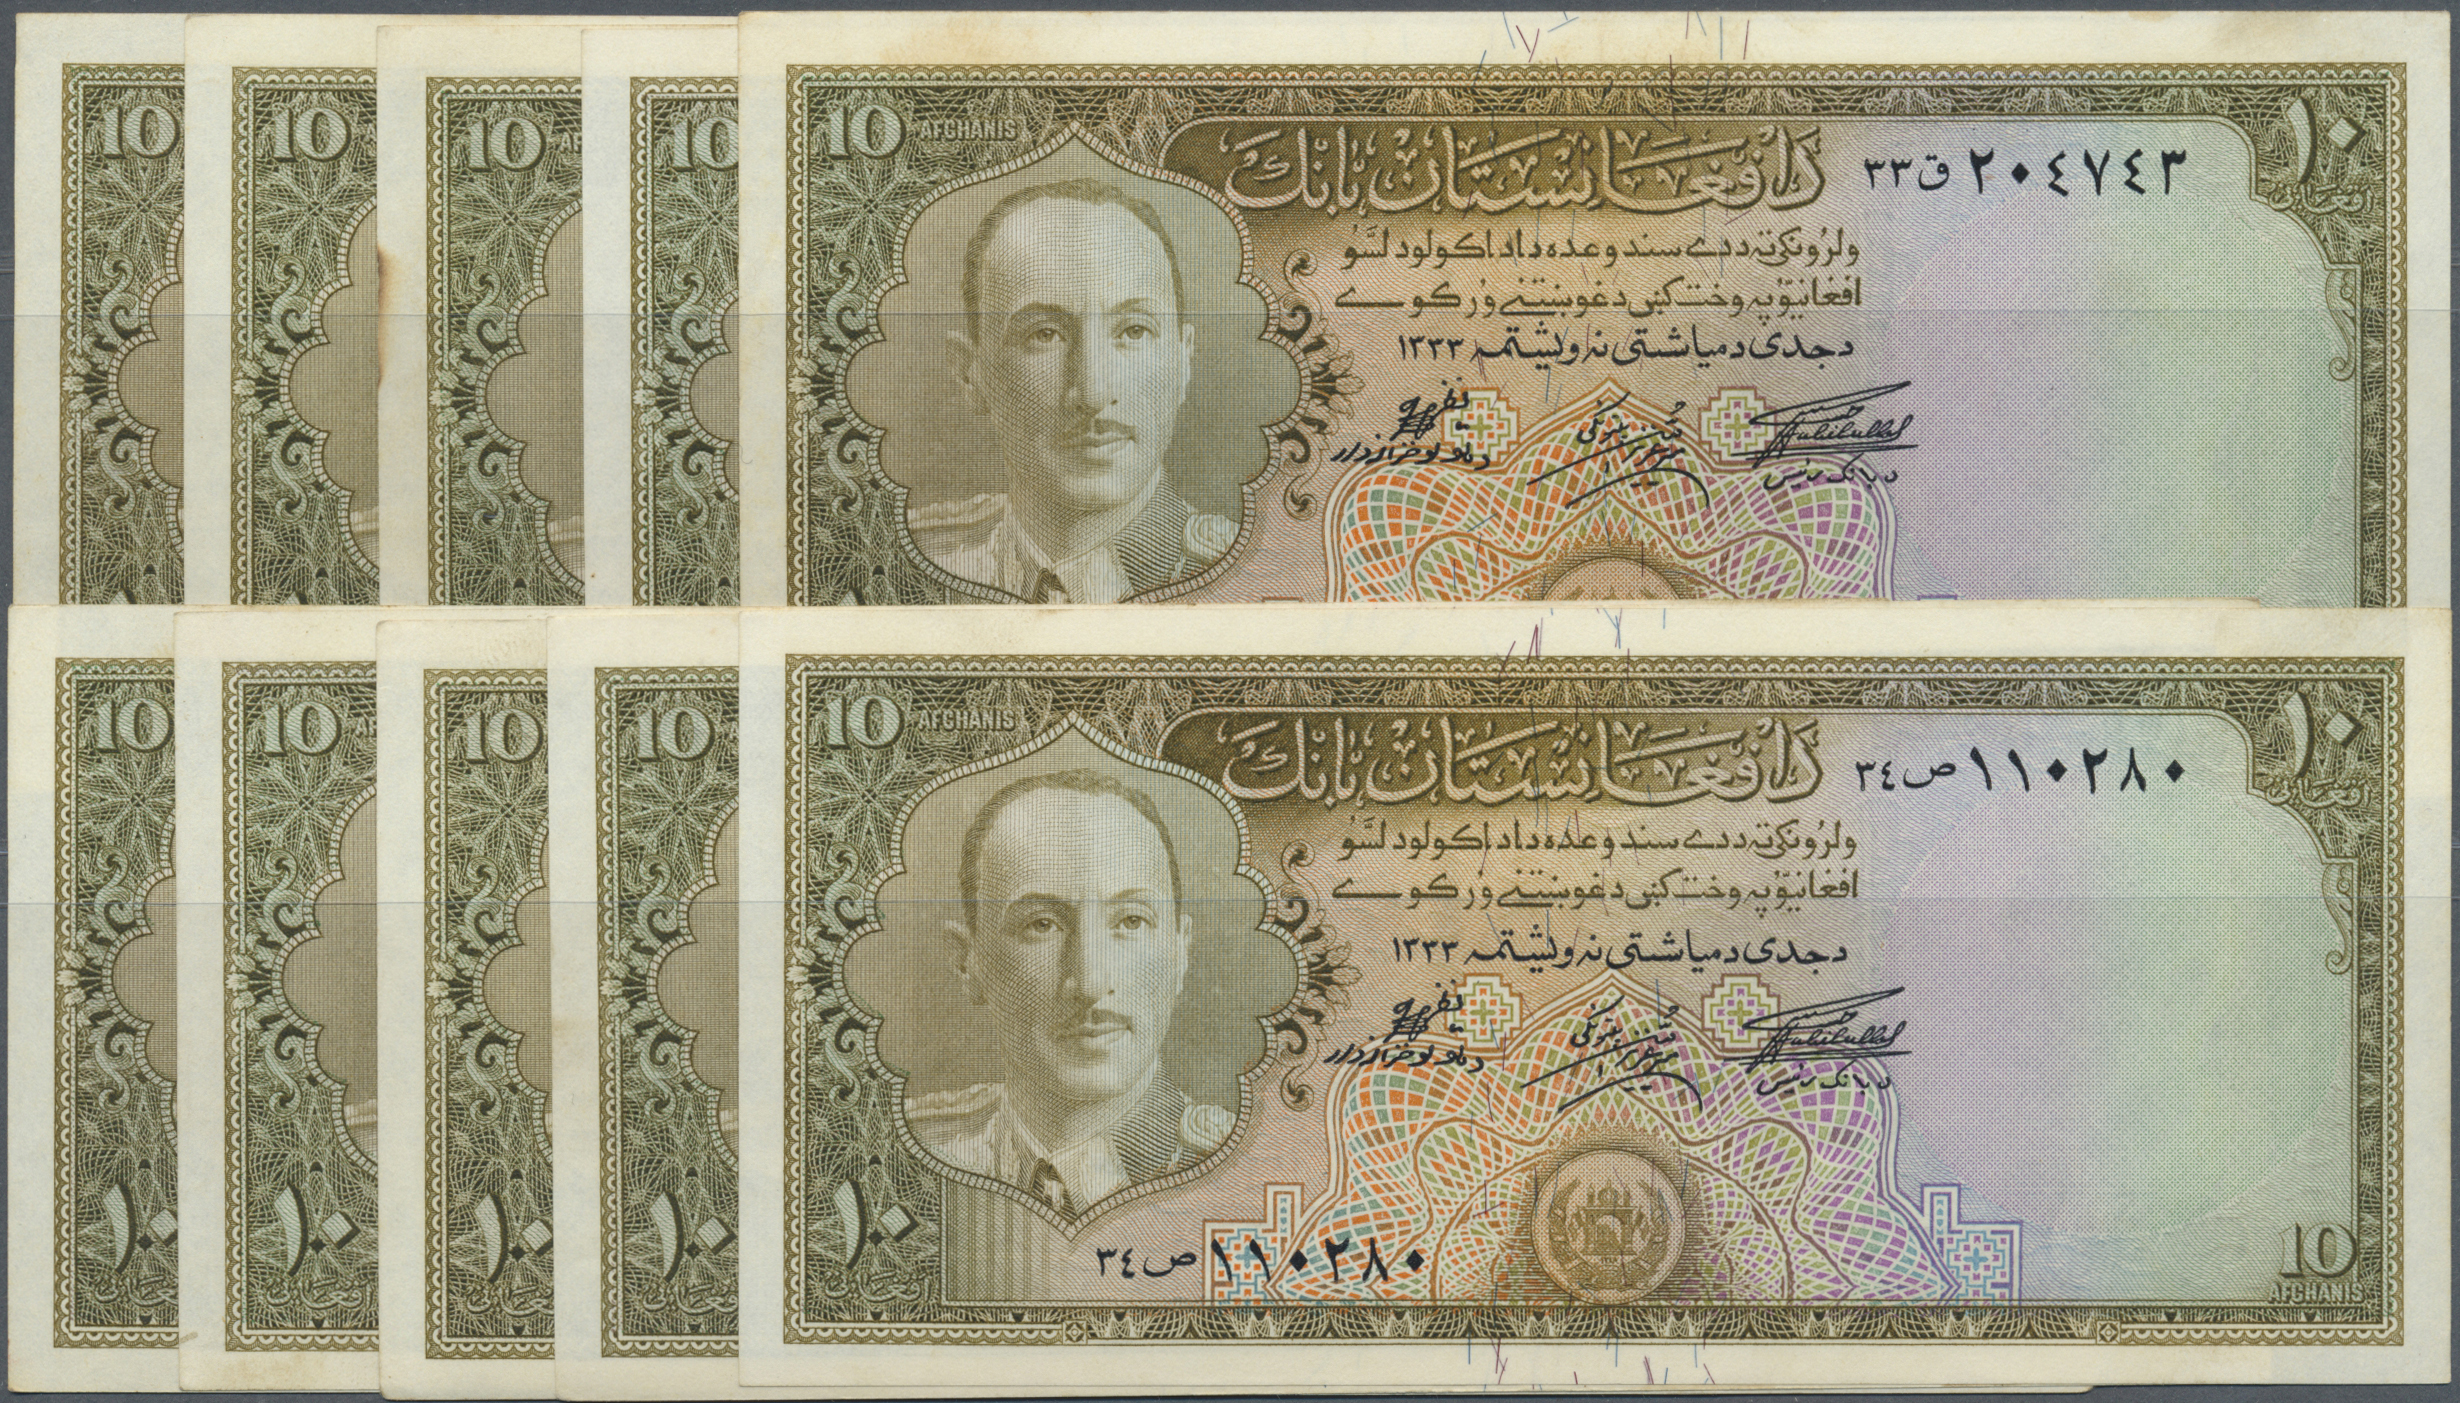 Lot 12 - Afghanistan | Banknoten  -  Auktionshaus Christoph Gärtner GmbH & Co. KG Banknotes Worldwide Auction #39 Day 1